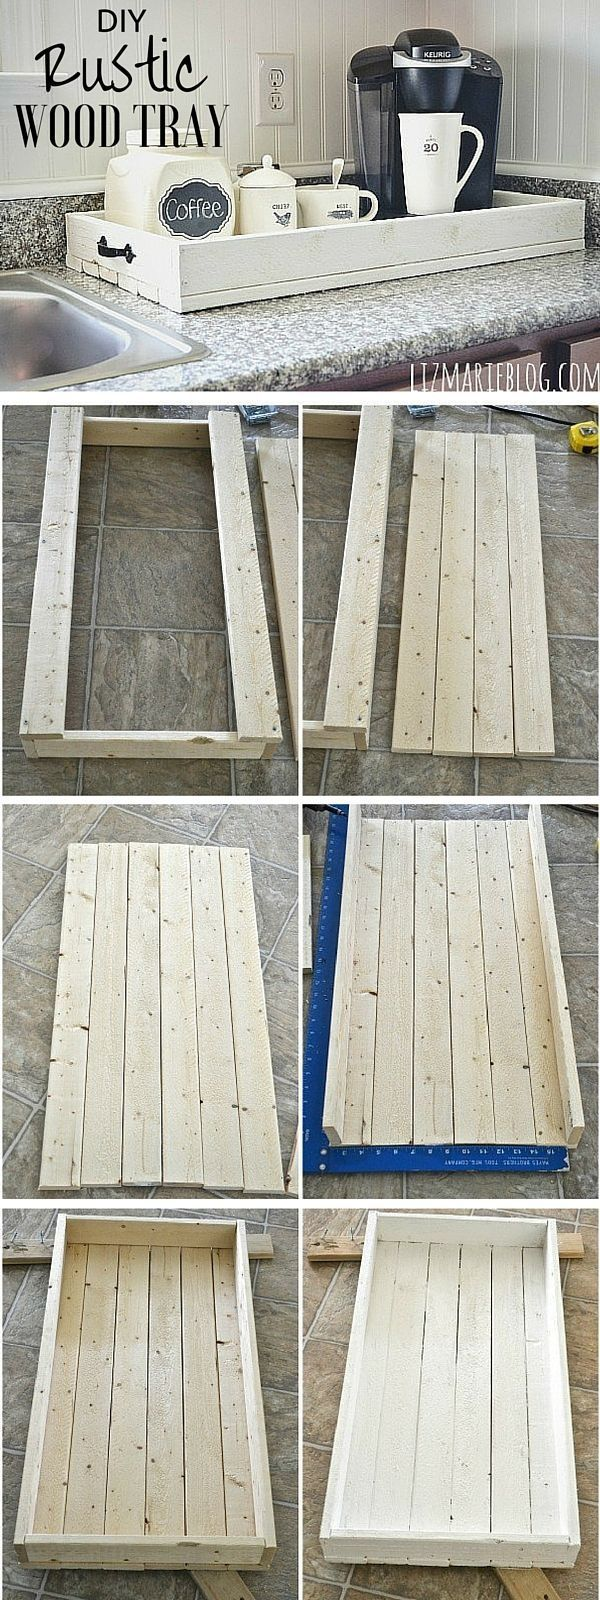 11 Best Home Improvement Images On Pinterest Ideas Furniture Pdf Wiring Boat Trailer Lights Flat Bottom For Sale Bestdiywood Check Out The Tutorial Diy Rustic Wood Tray Istandarddesign By Isabelle07